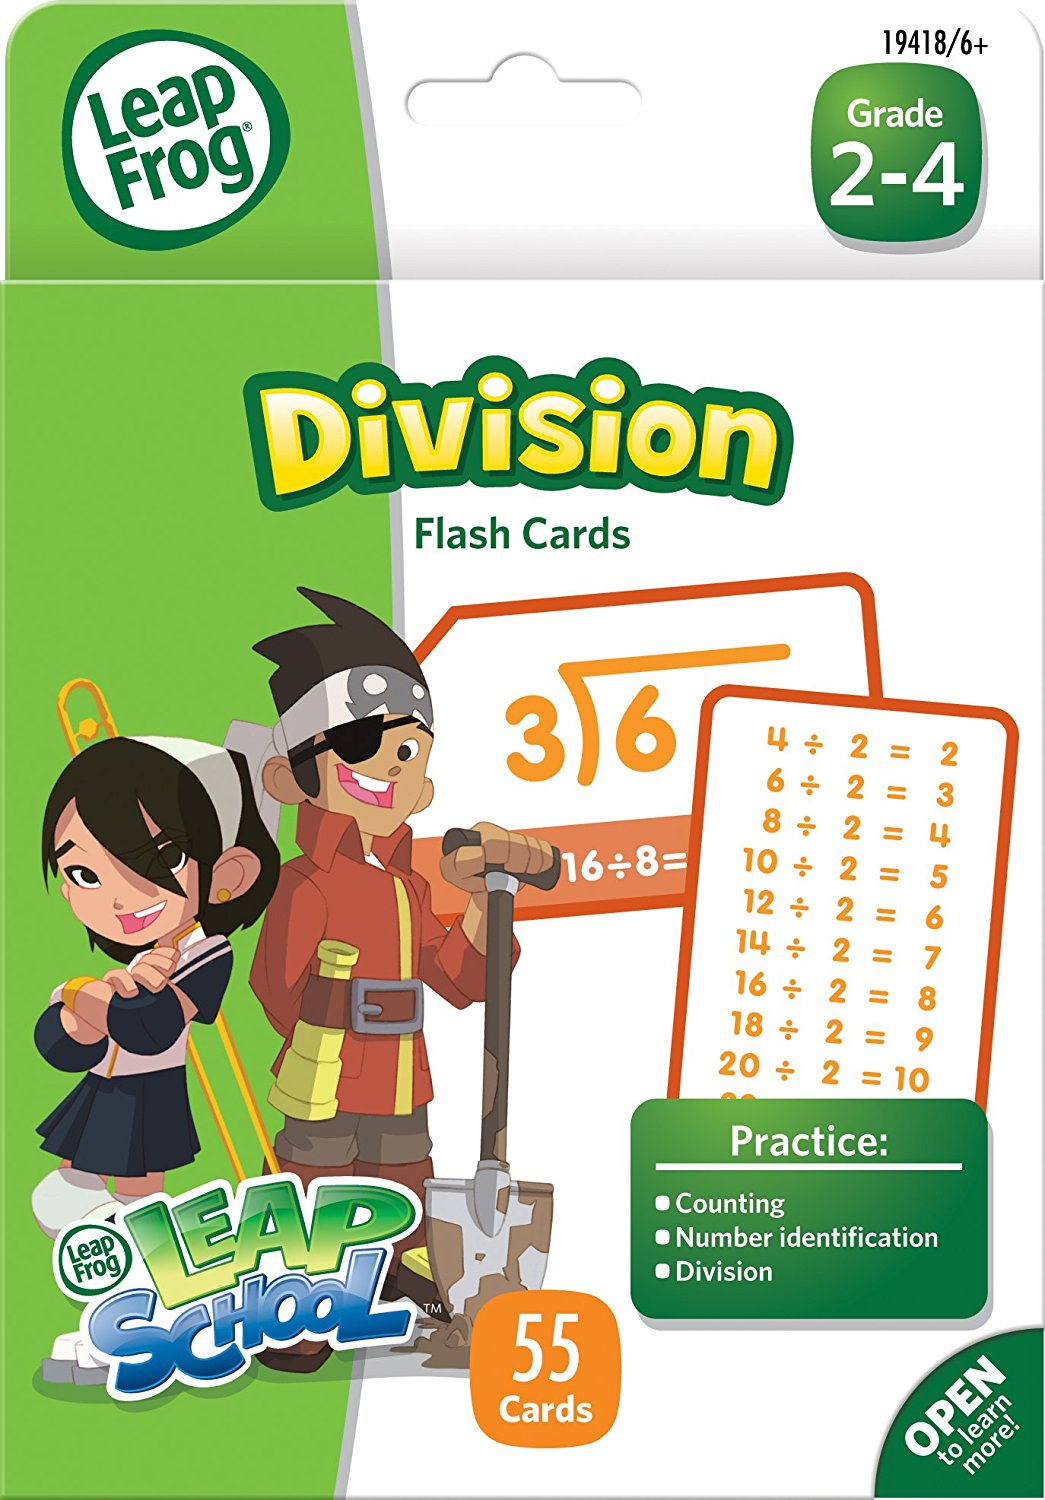 LeapSchool Division Flash Cards for Grades 2-4, Pack of 59 (CYD82), Included tip card... by